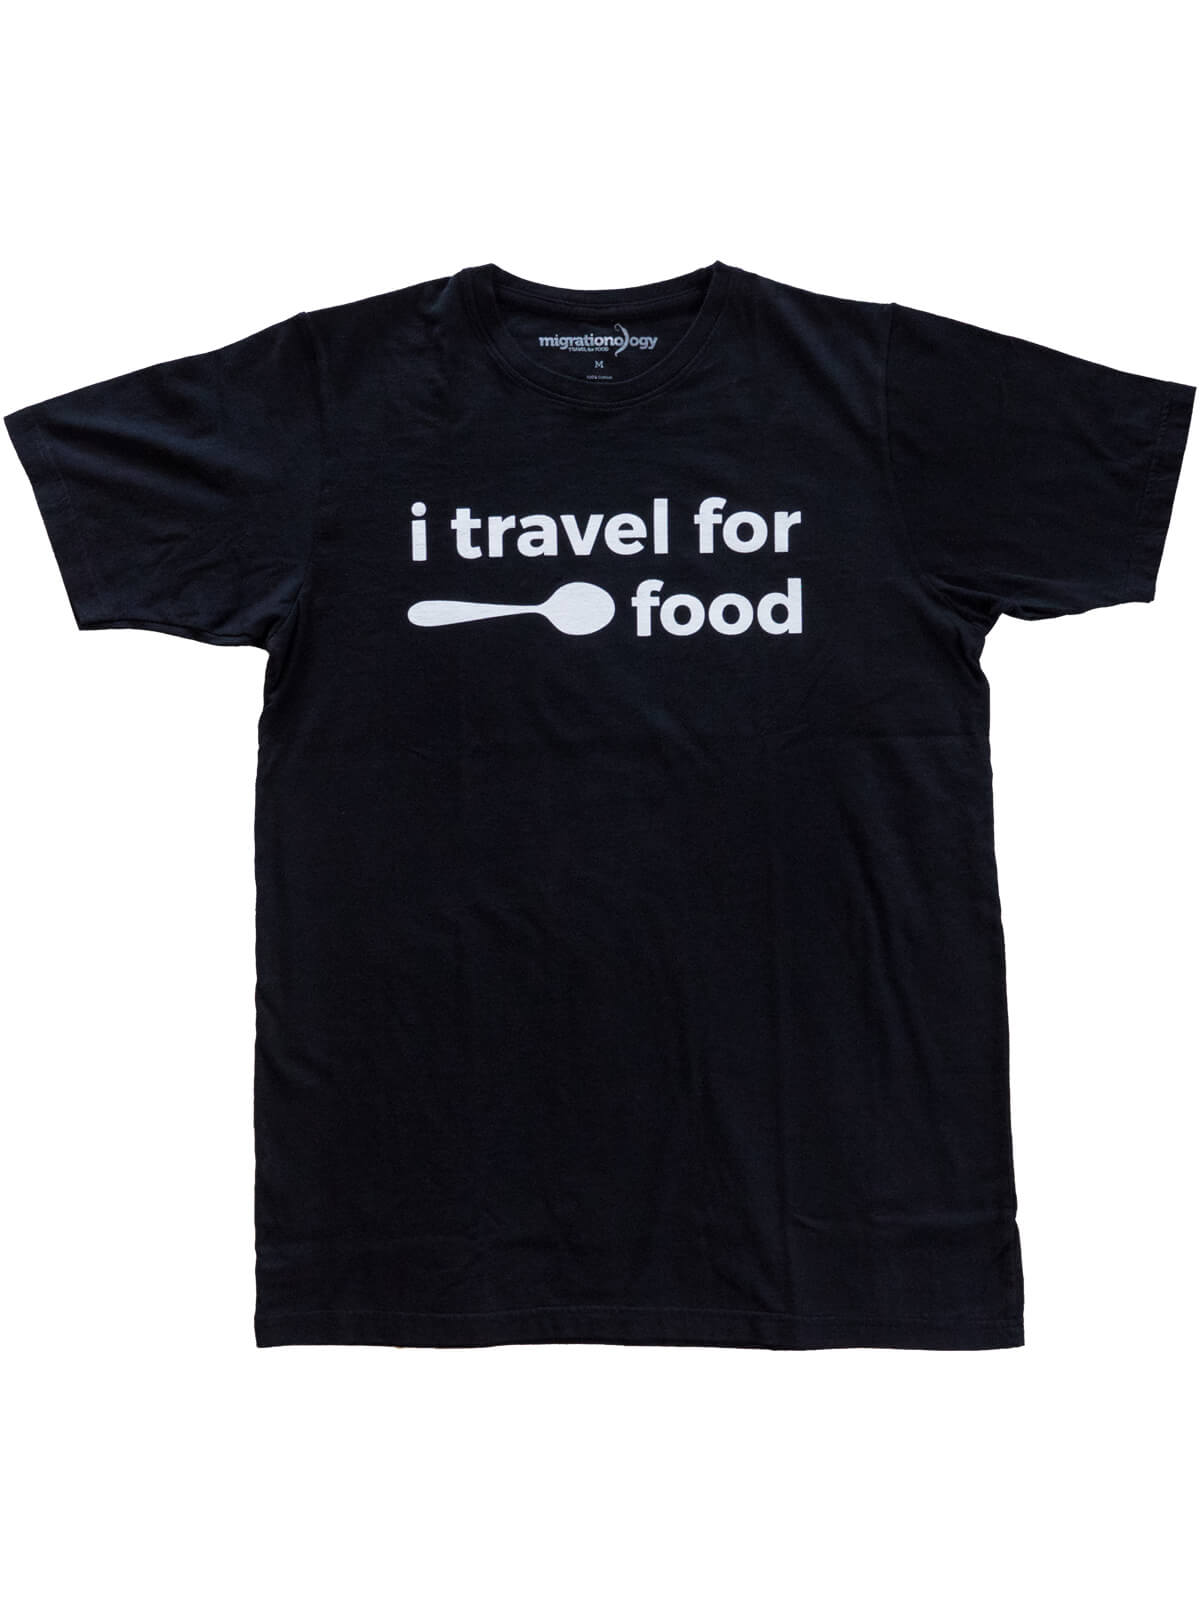 travel-for-food-1-1.jpg